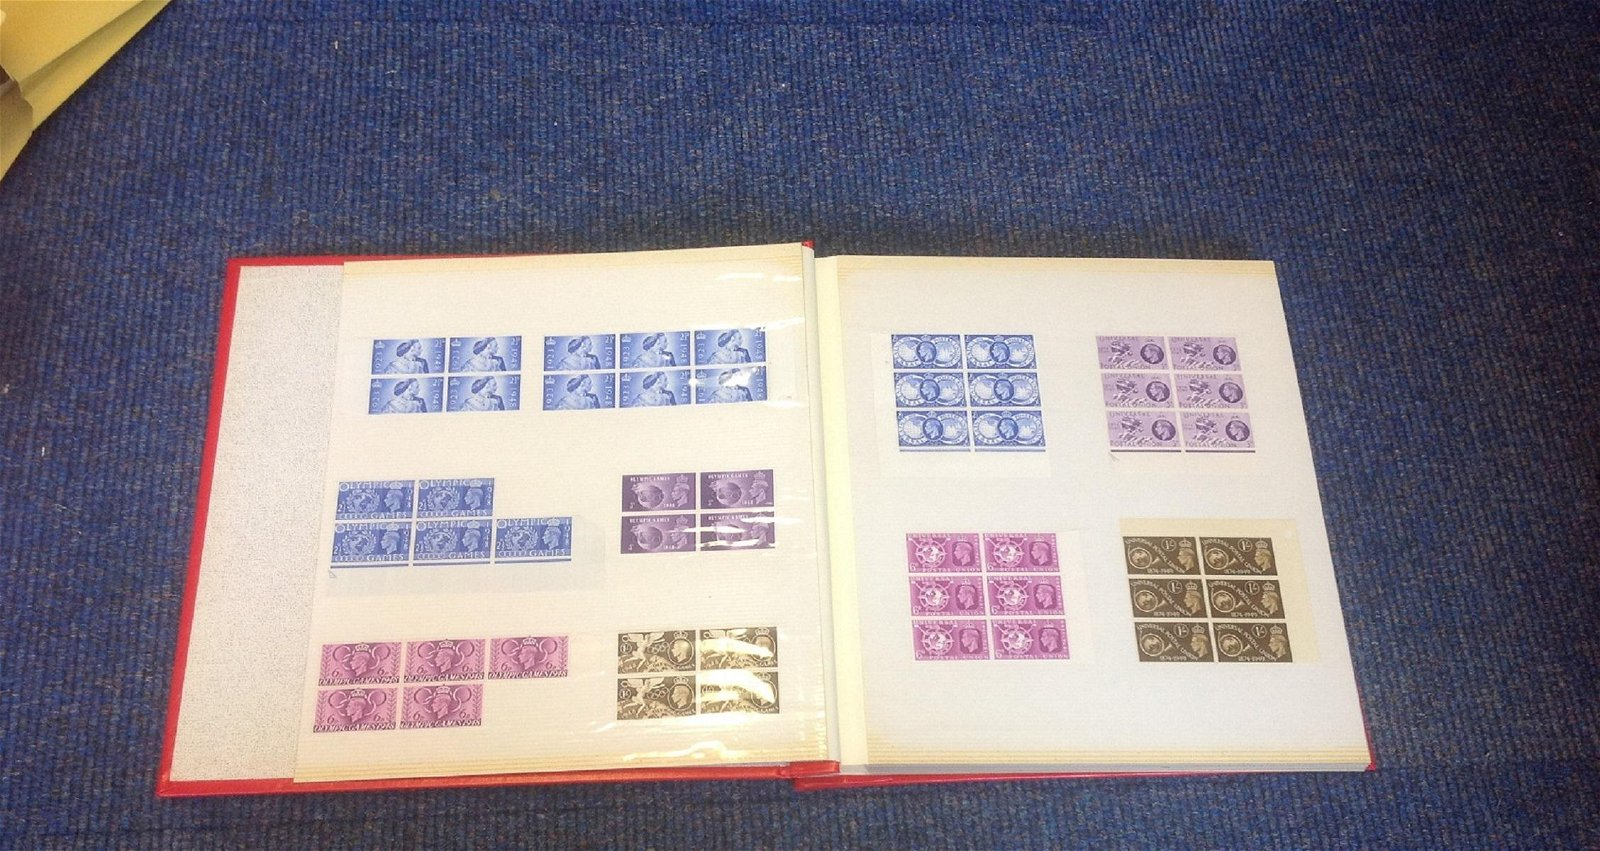 GB stamp collection in large red photo album, Mainly